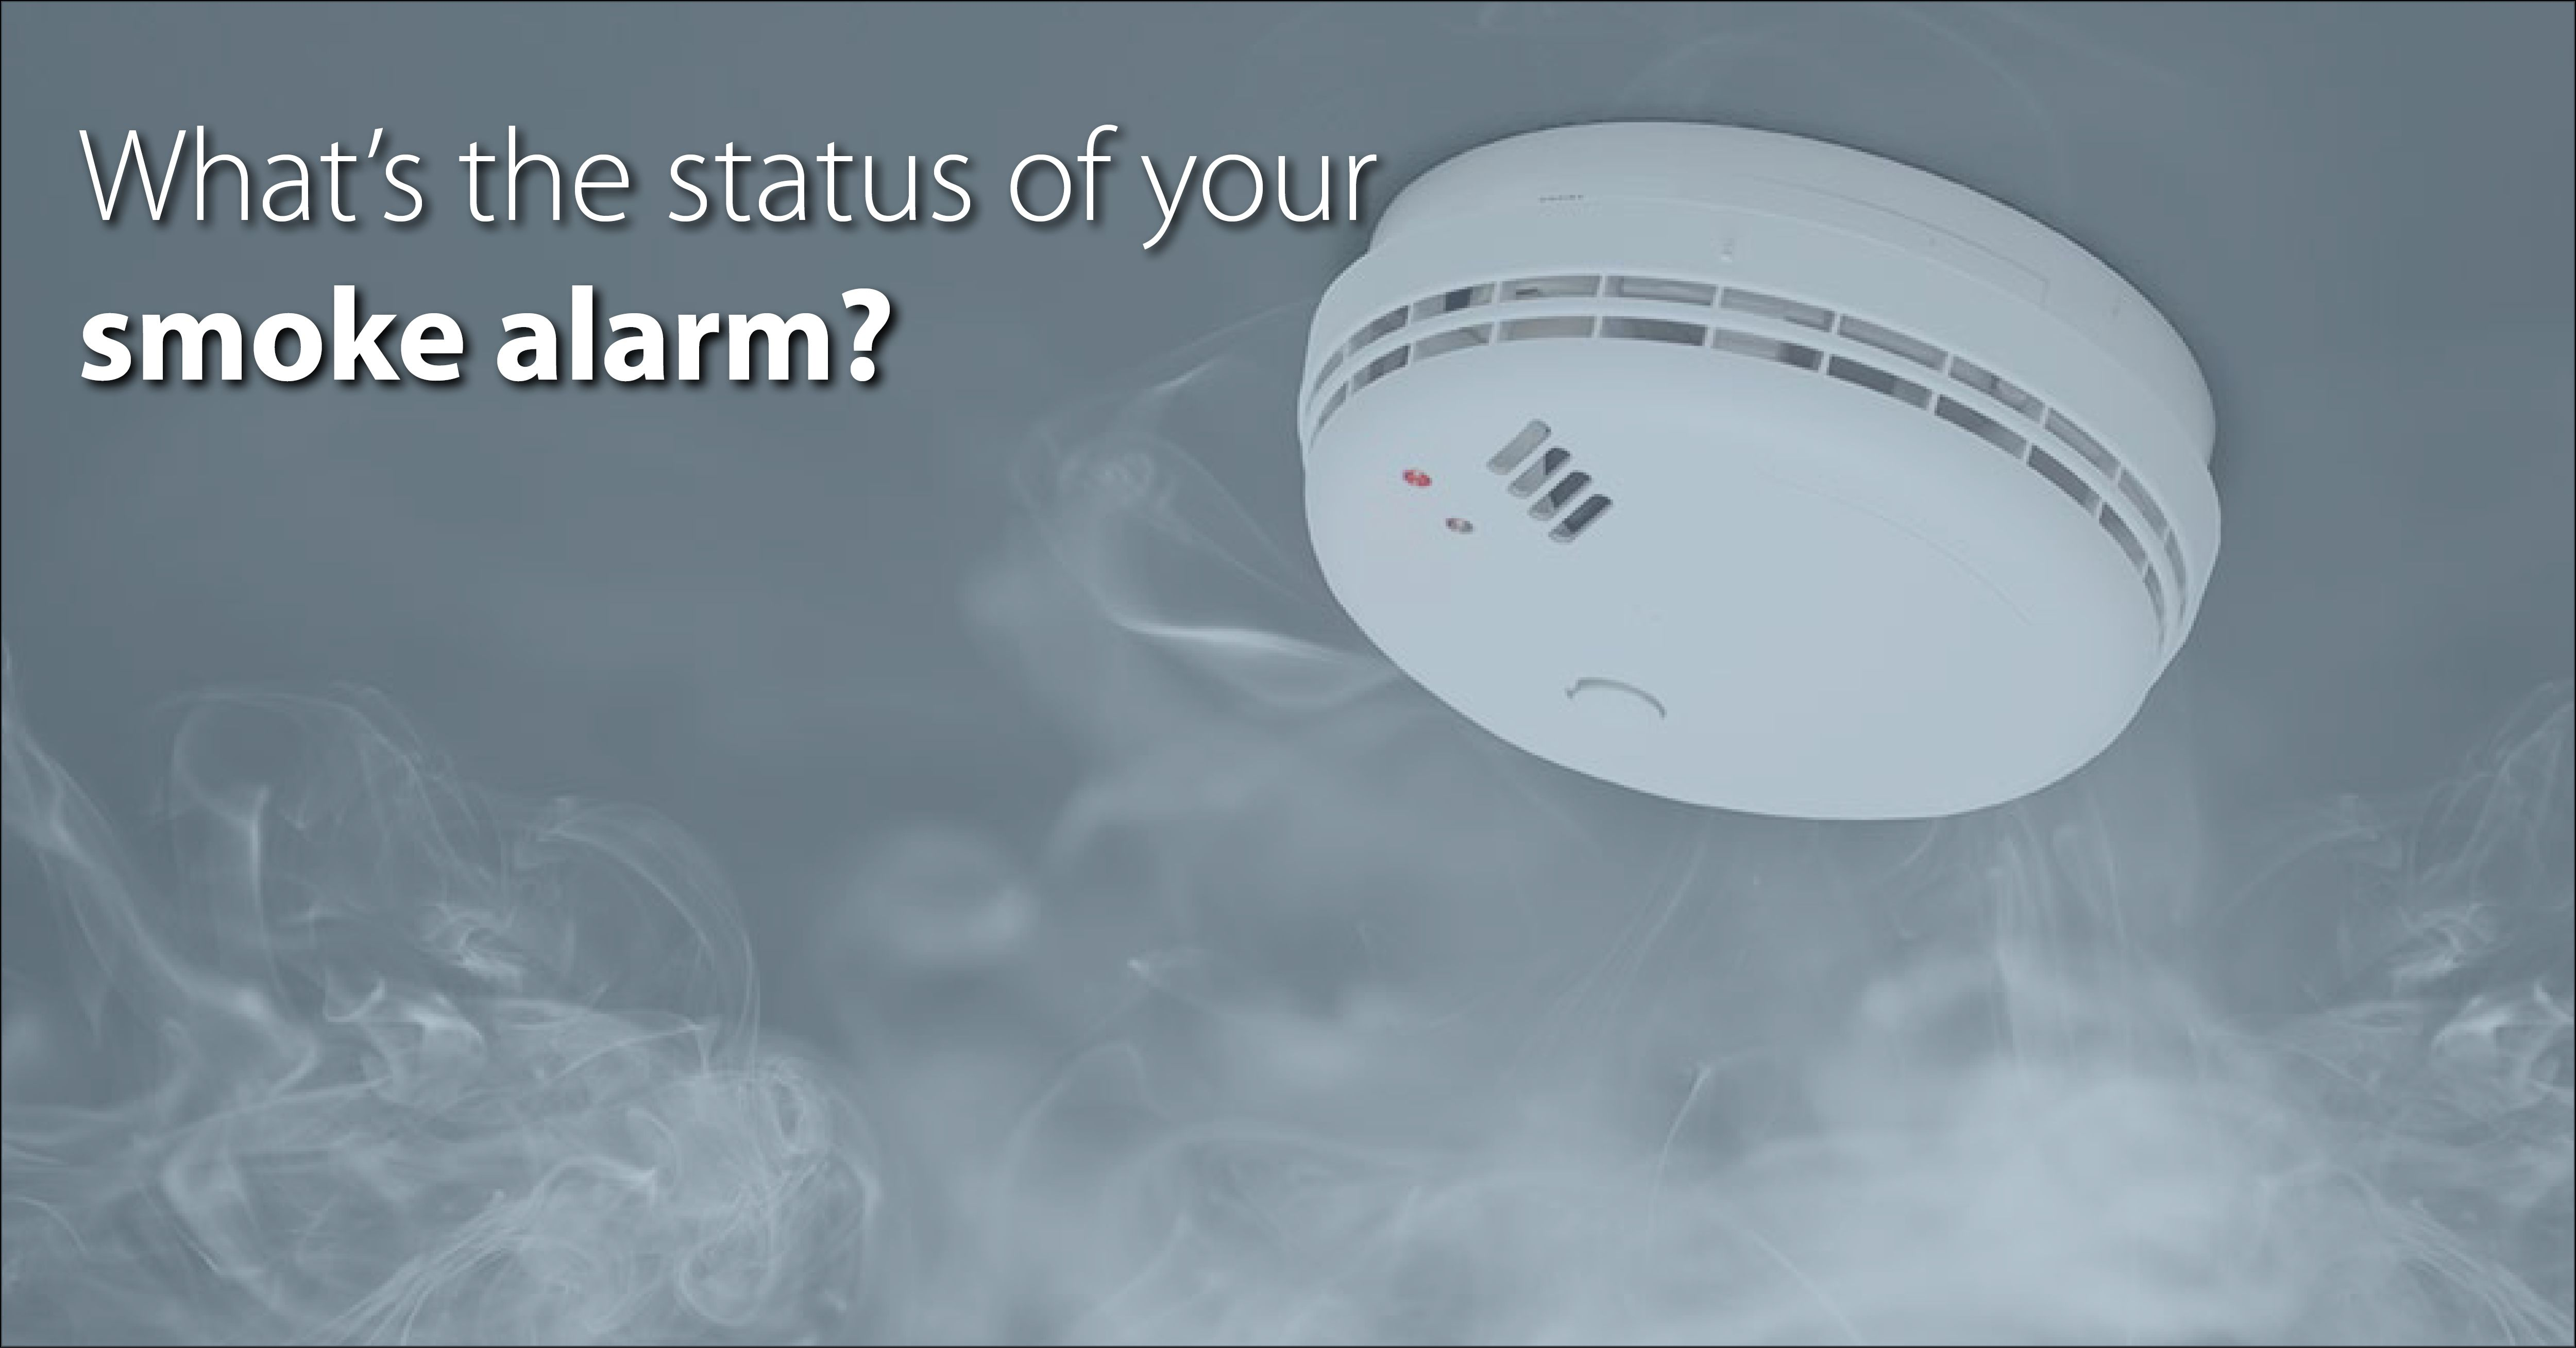 austin residents to check their fire alarms